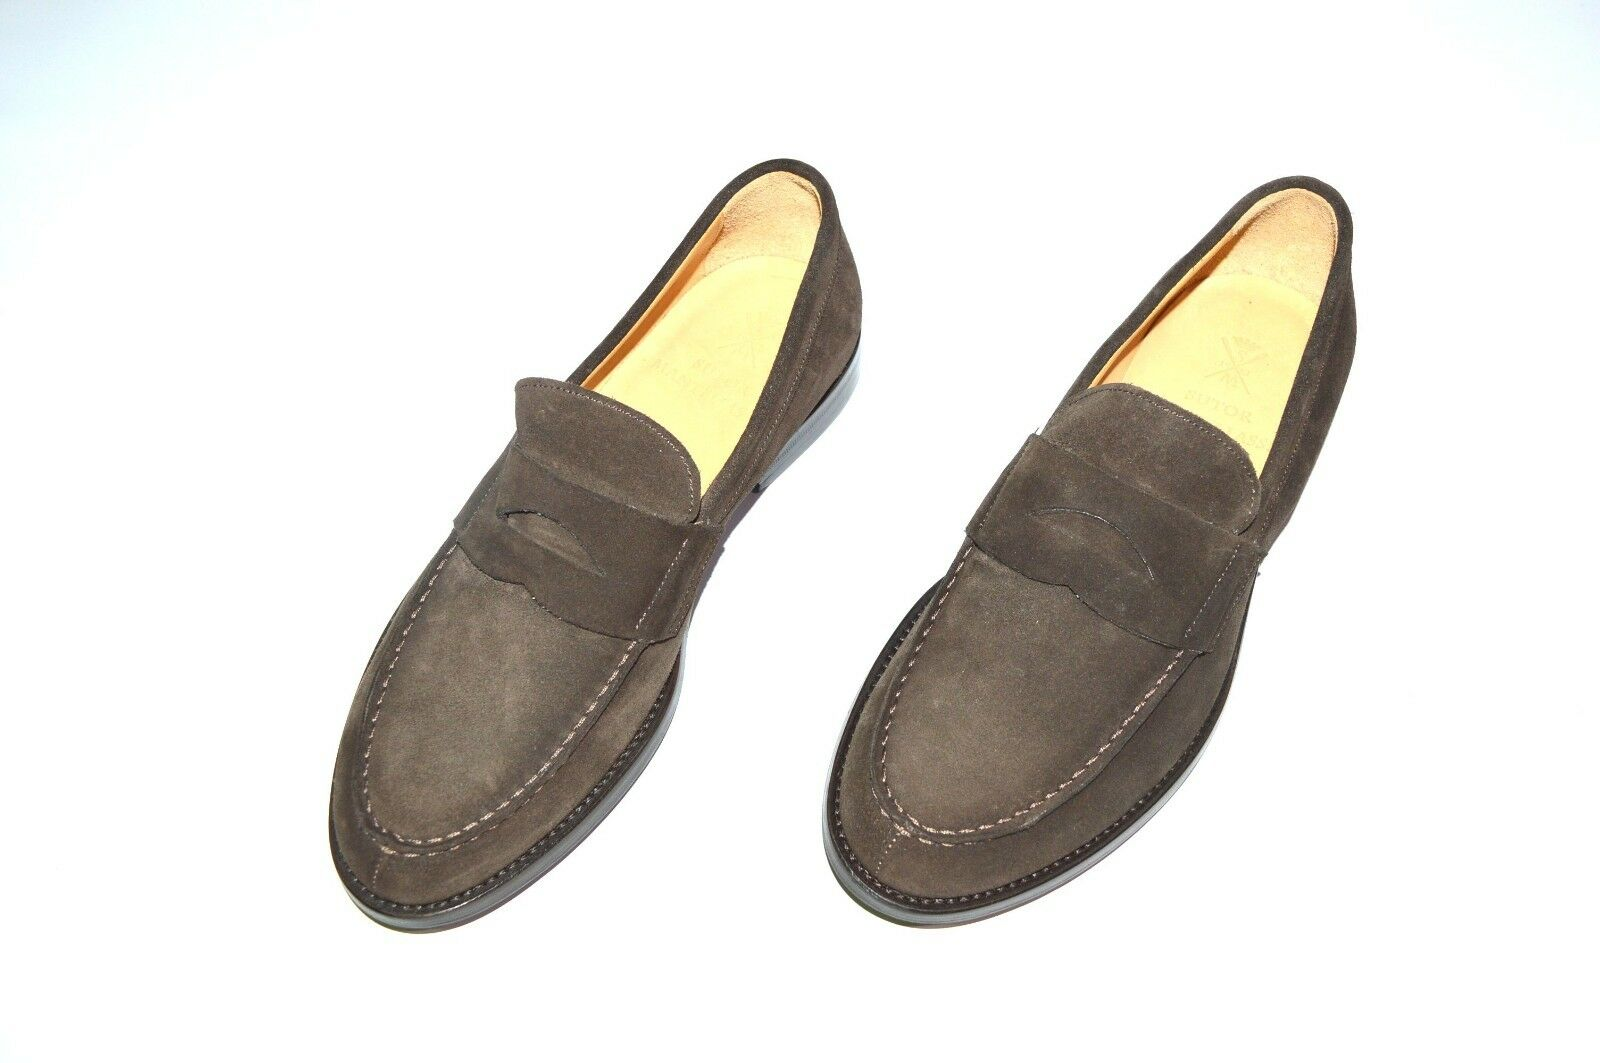 NEW 940,00 SUTOR SUTOR 940,00 MANTELLASSI  Shoes Size Eu 44.5 Uk 10.5 Us 11.5 (Cod 160) b72f5f